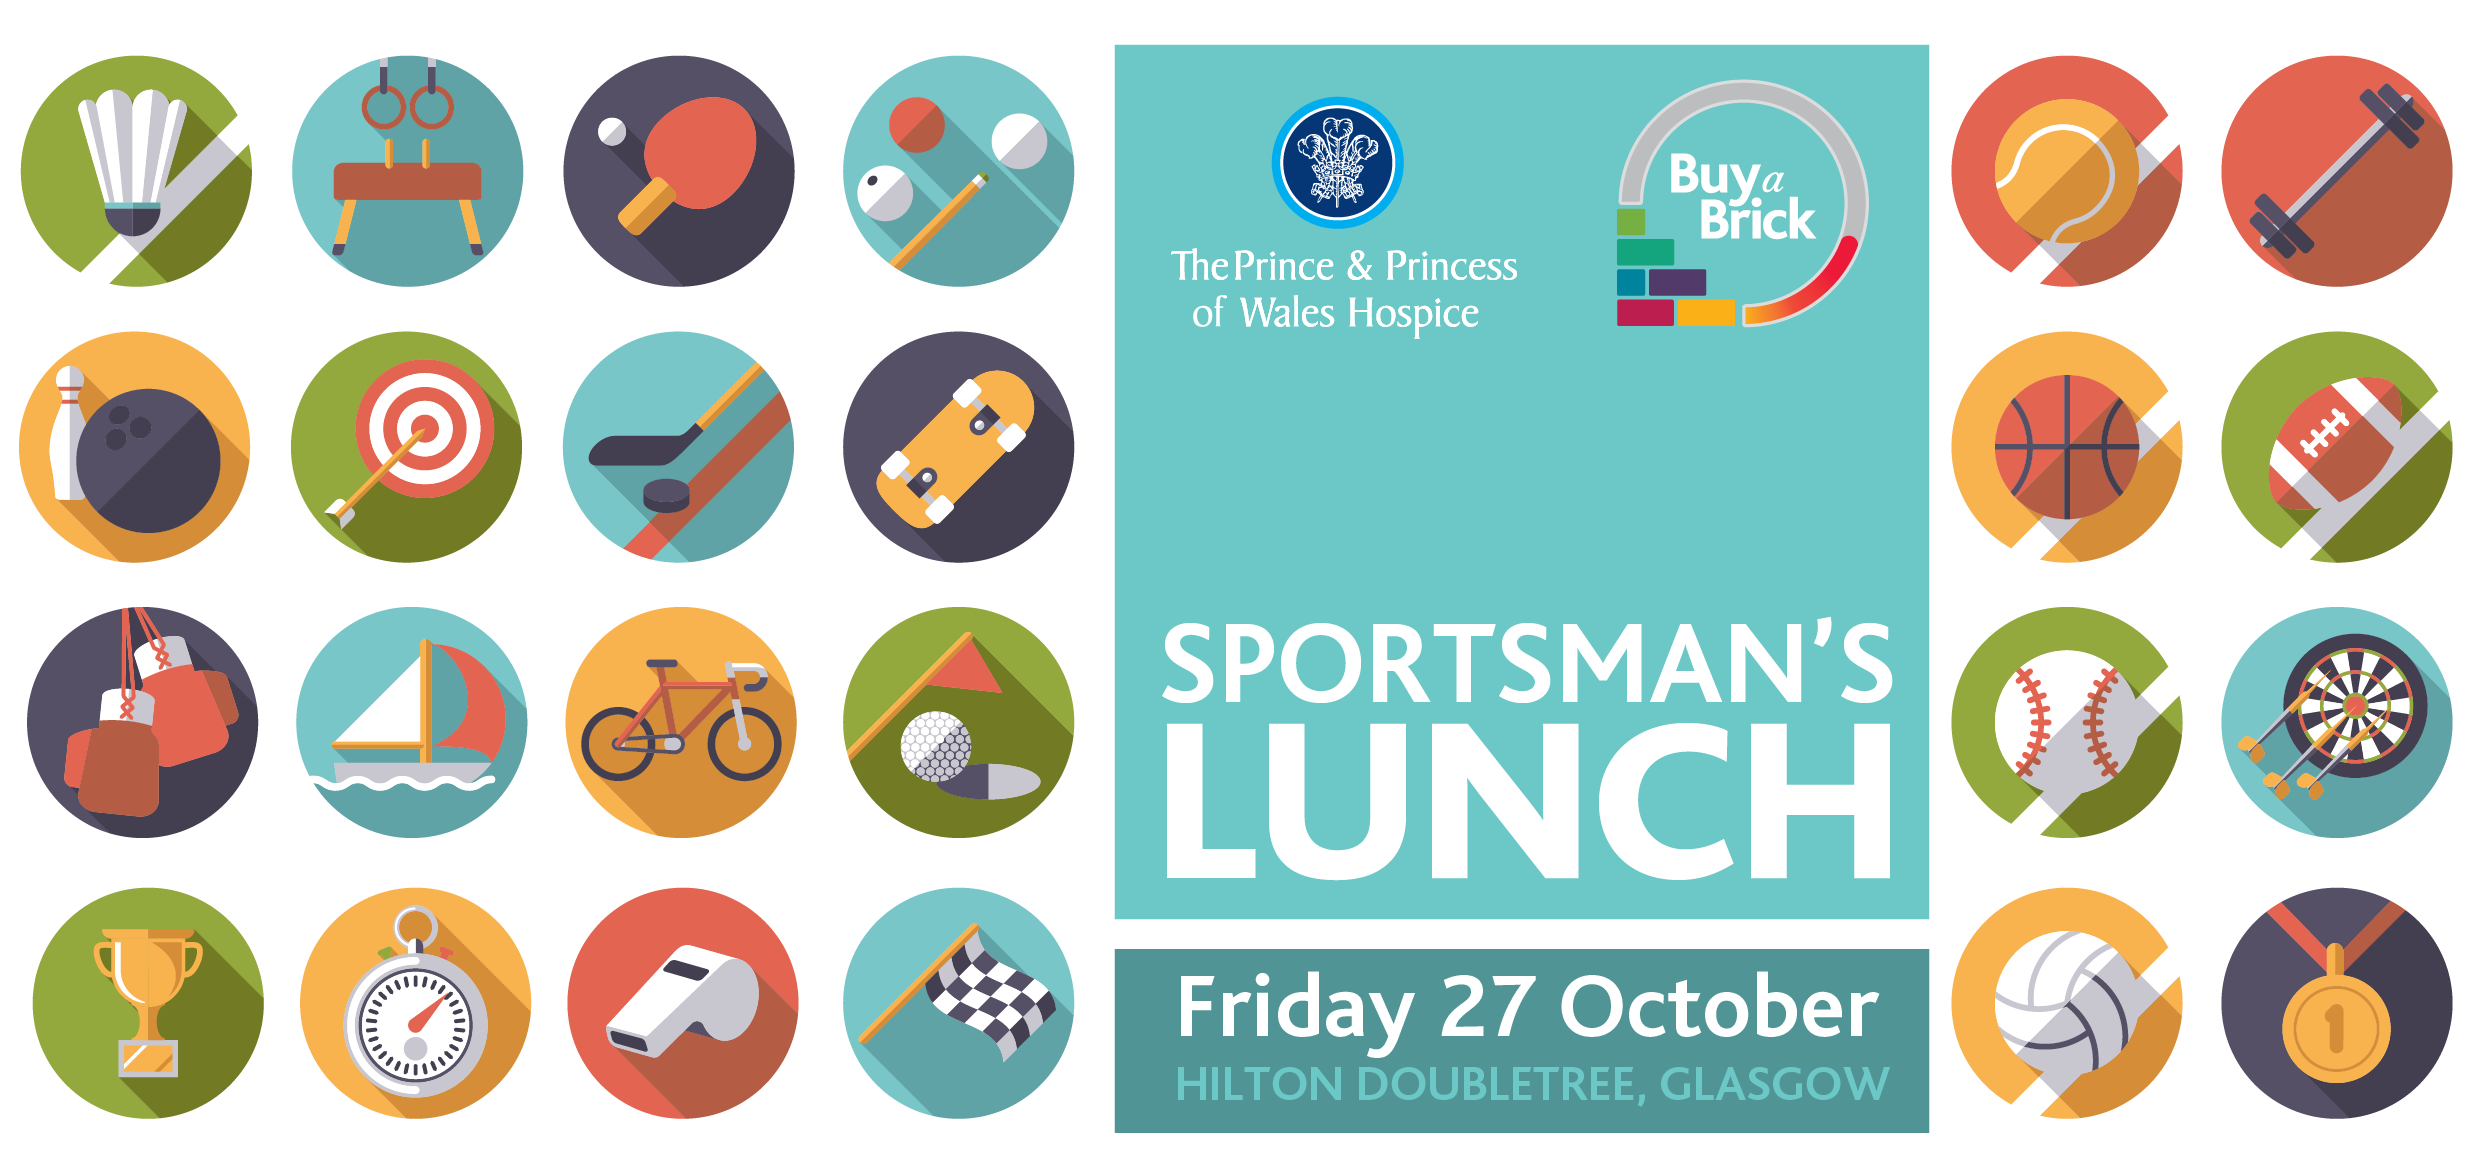 Sportman's Lunch taking place on Friday 27 October